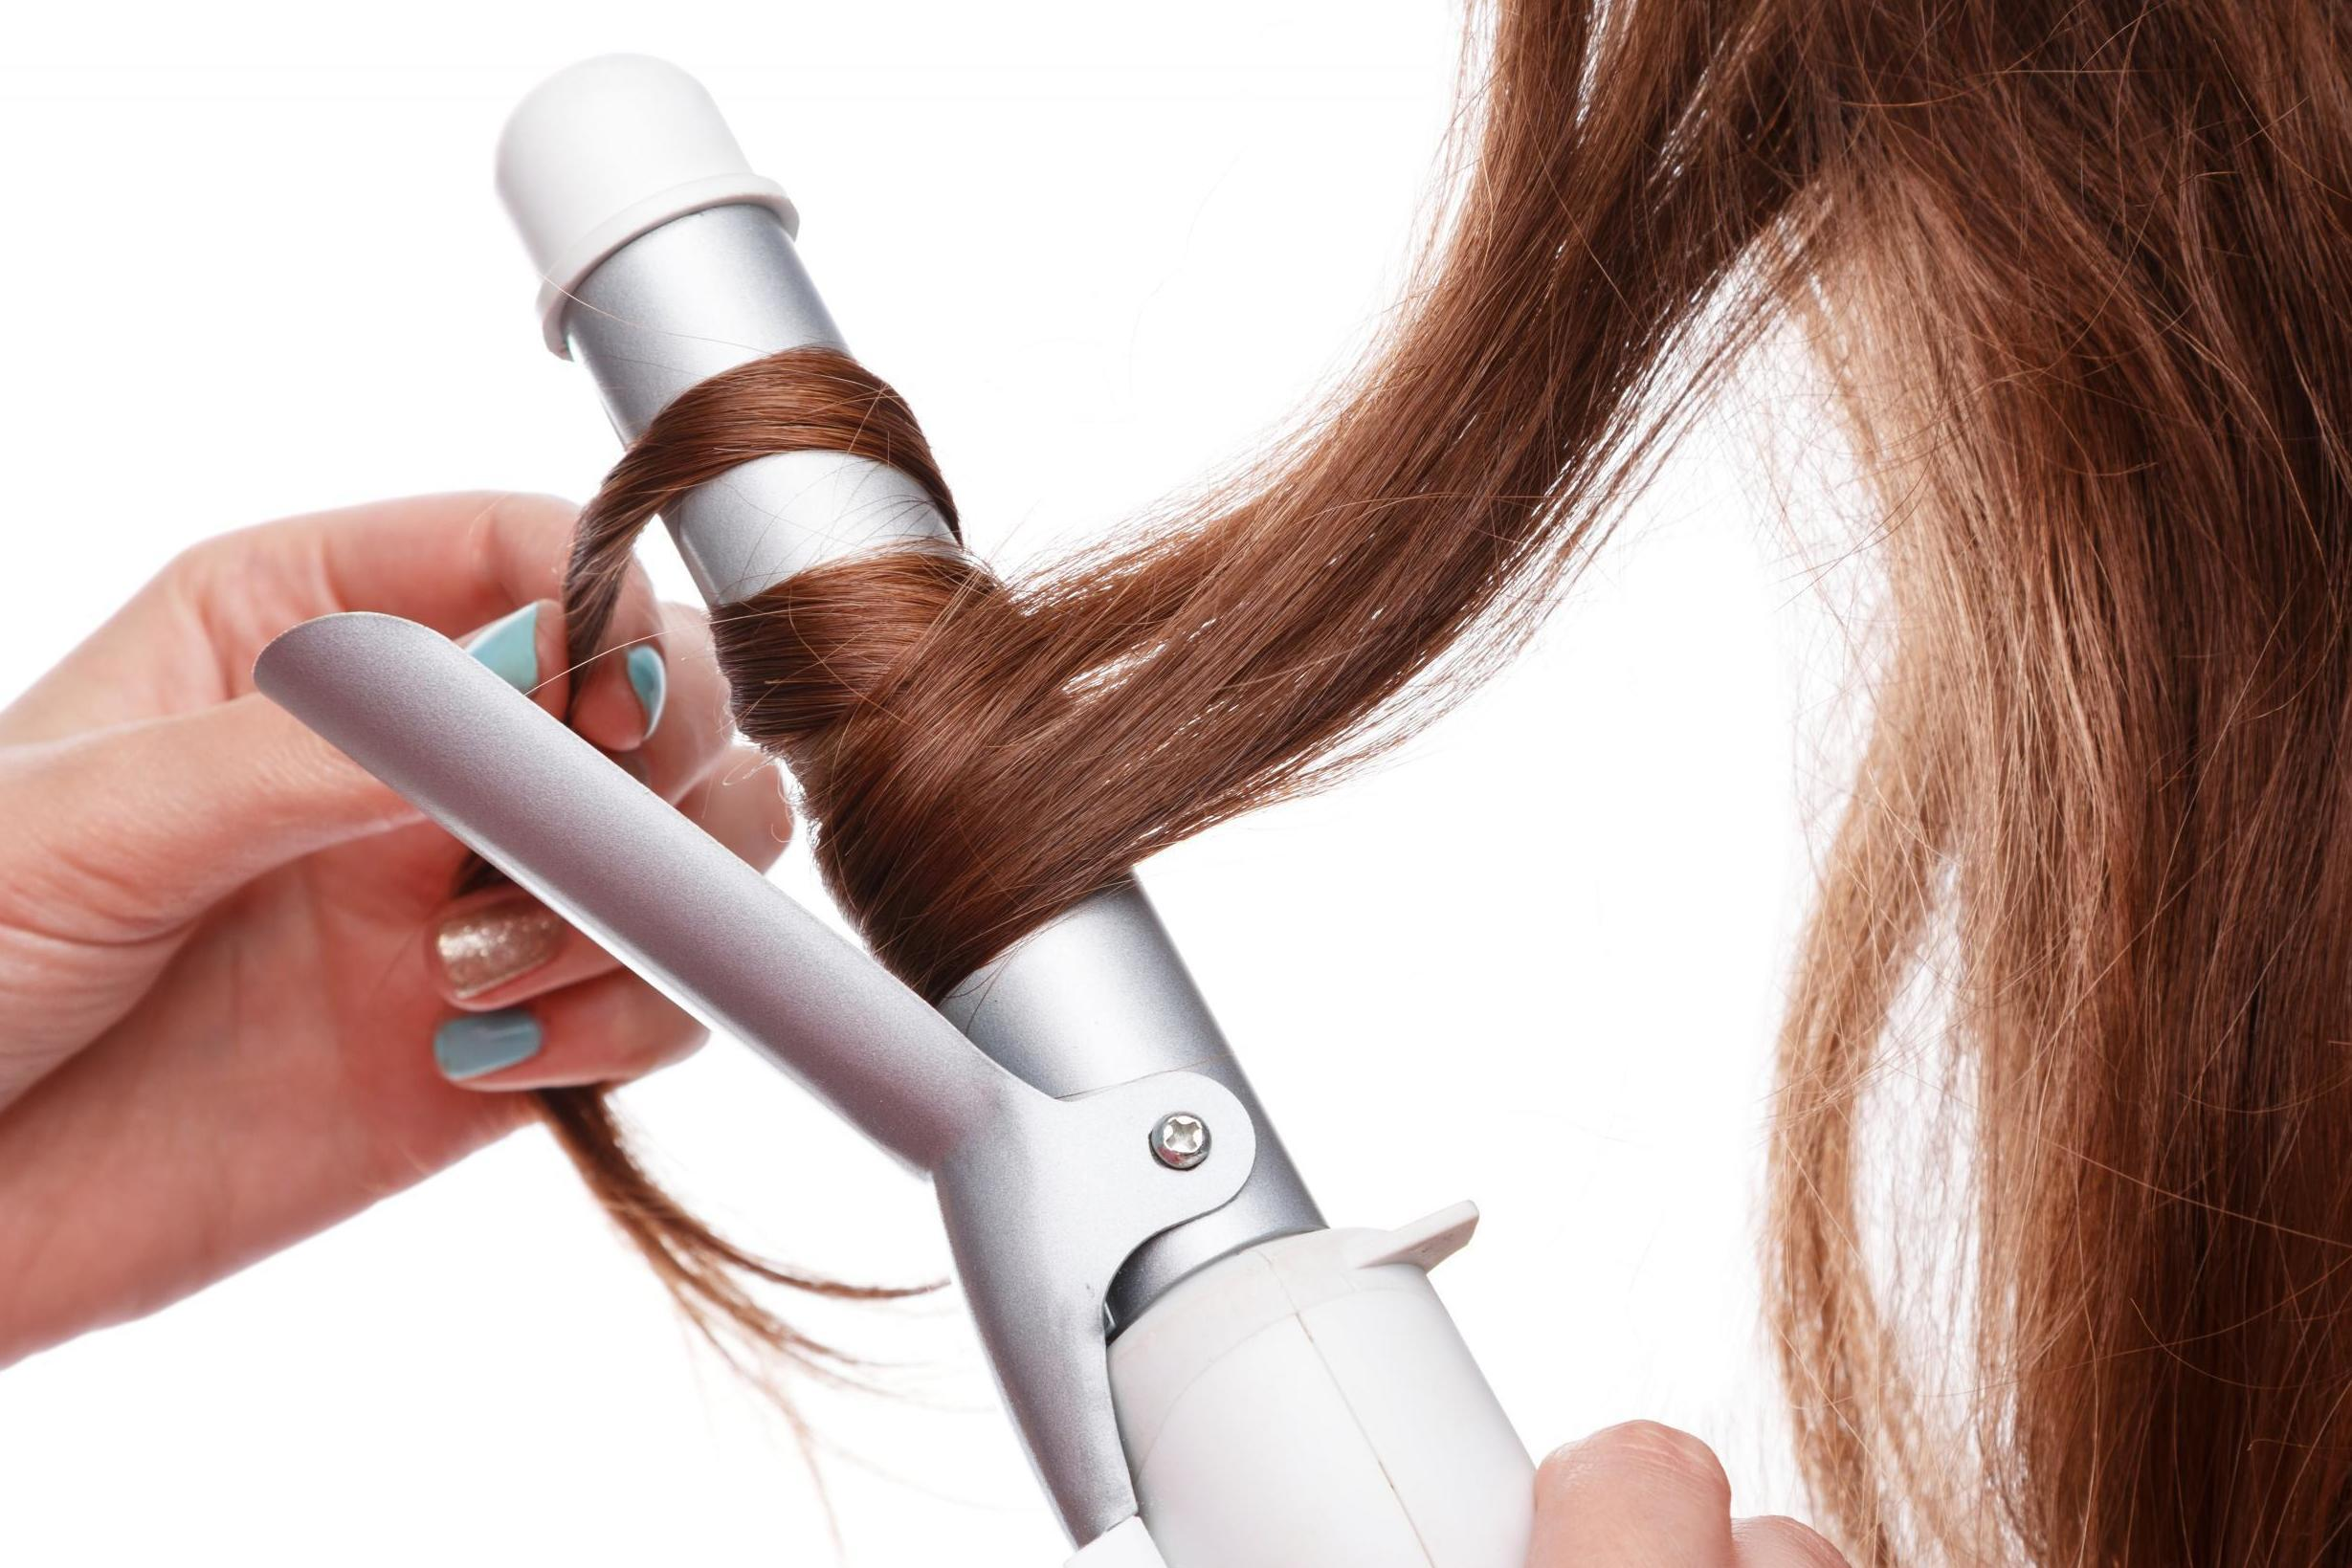 10 best curling irons | The Independentindependent_brand_ident_LOGOUntitled